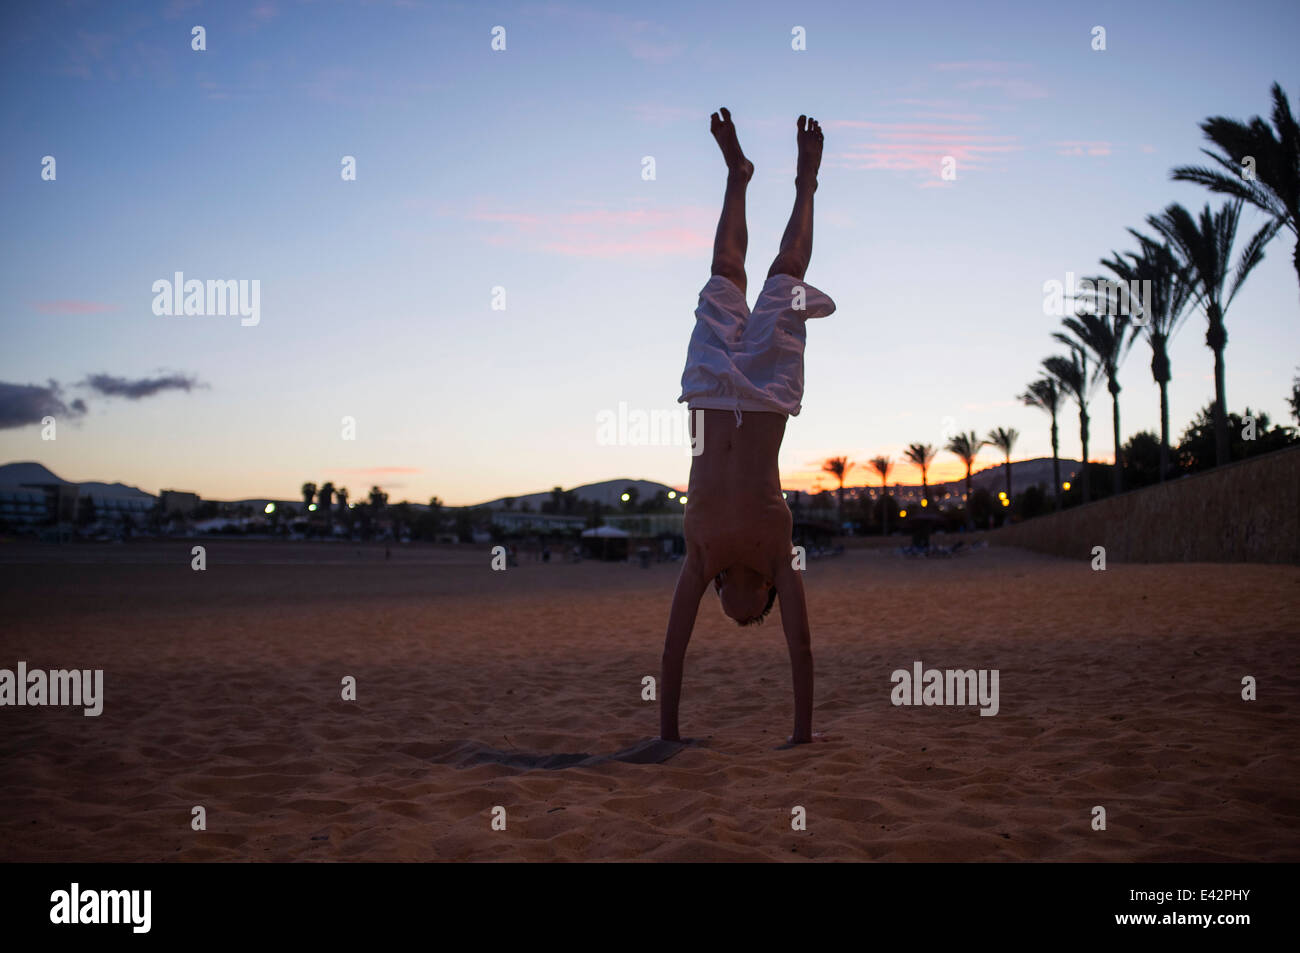 Silhouetted boy doing handstand on beach at dusk - Stock Image